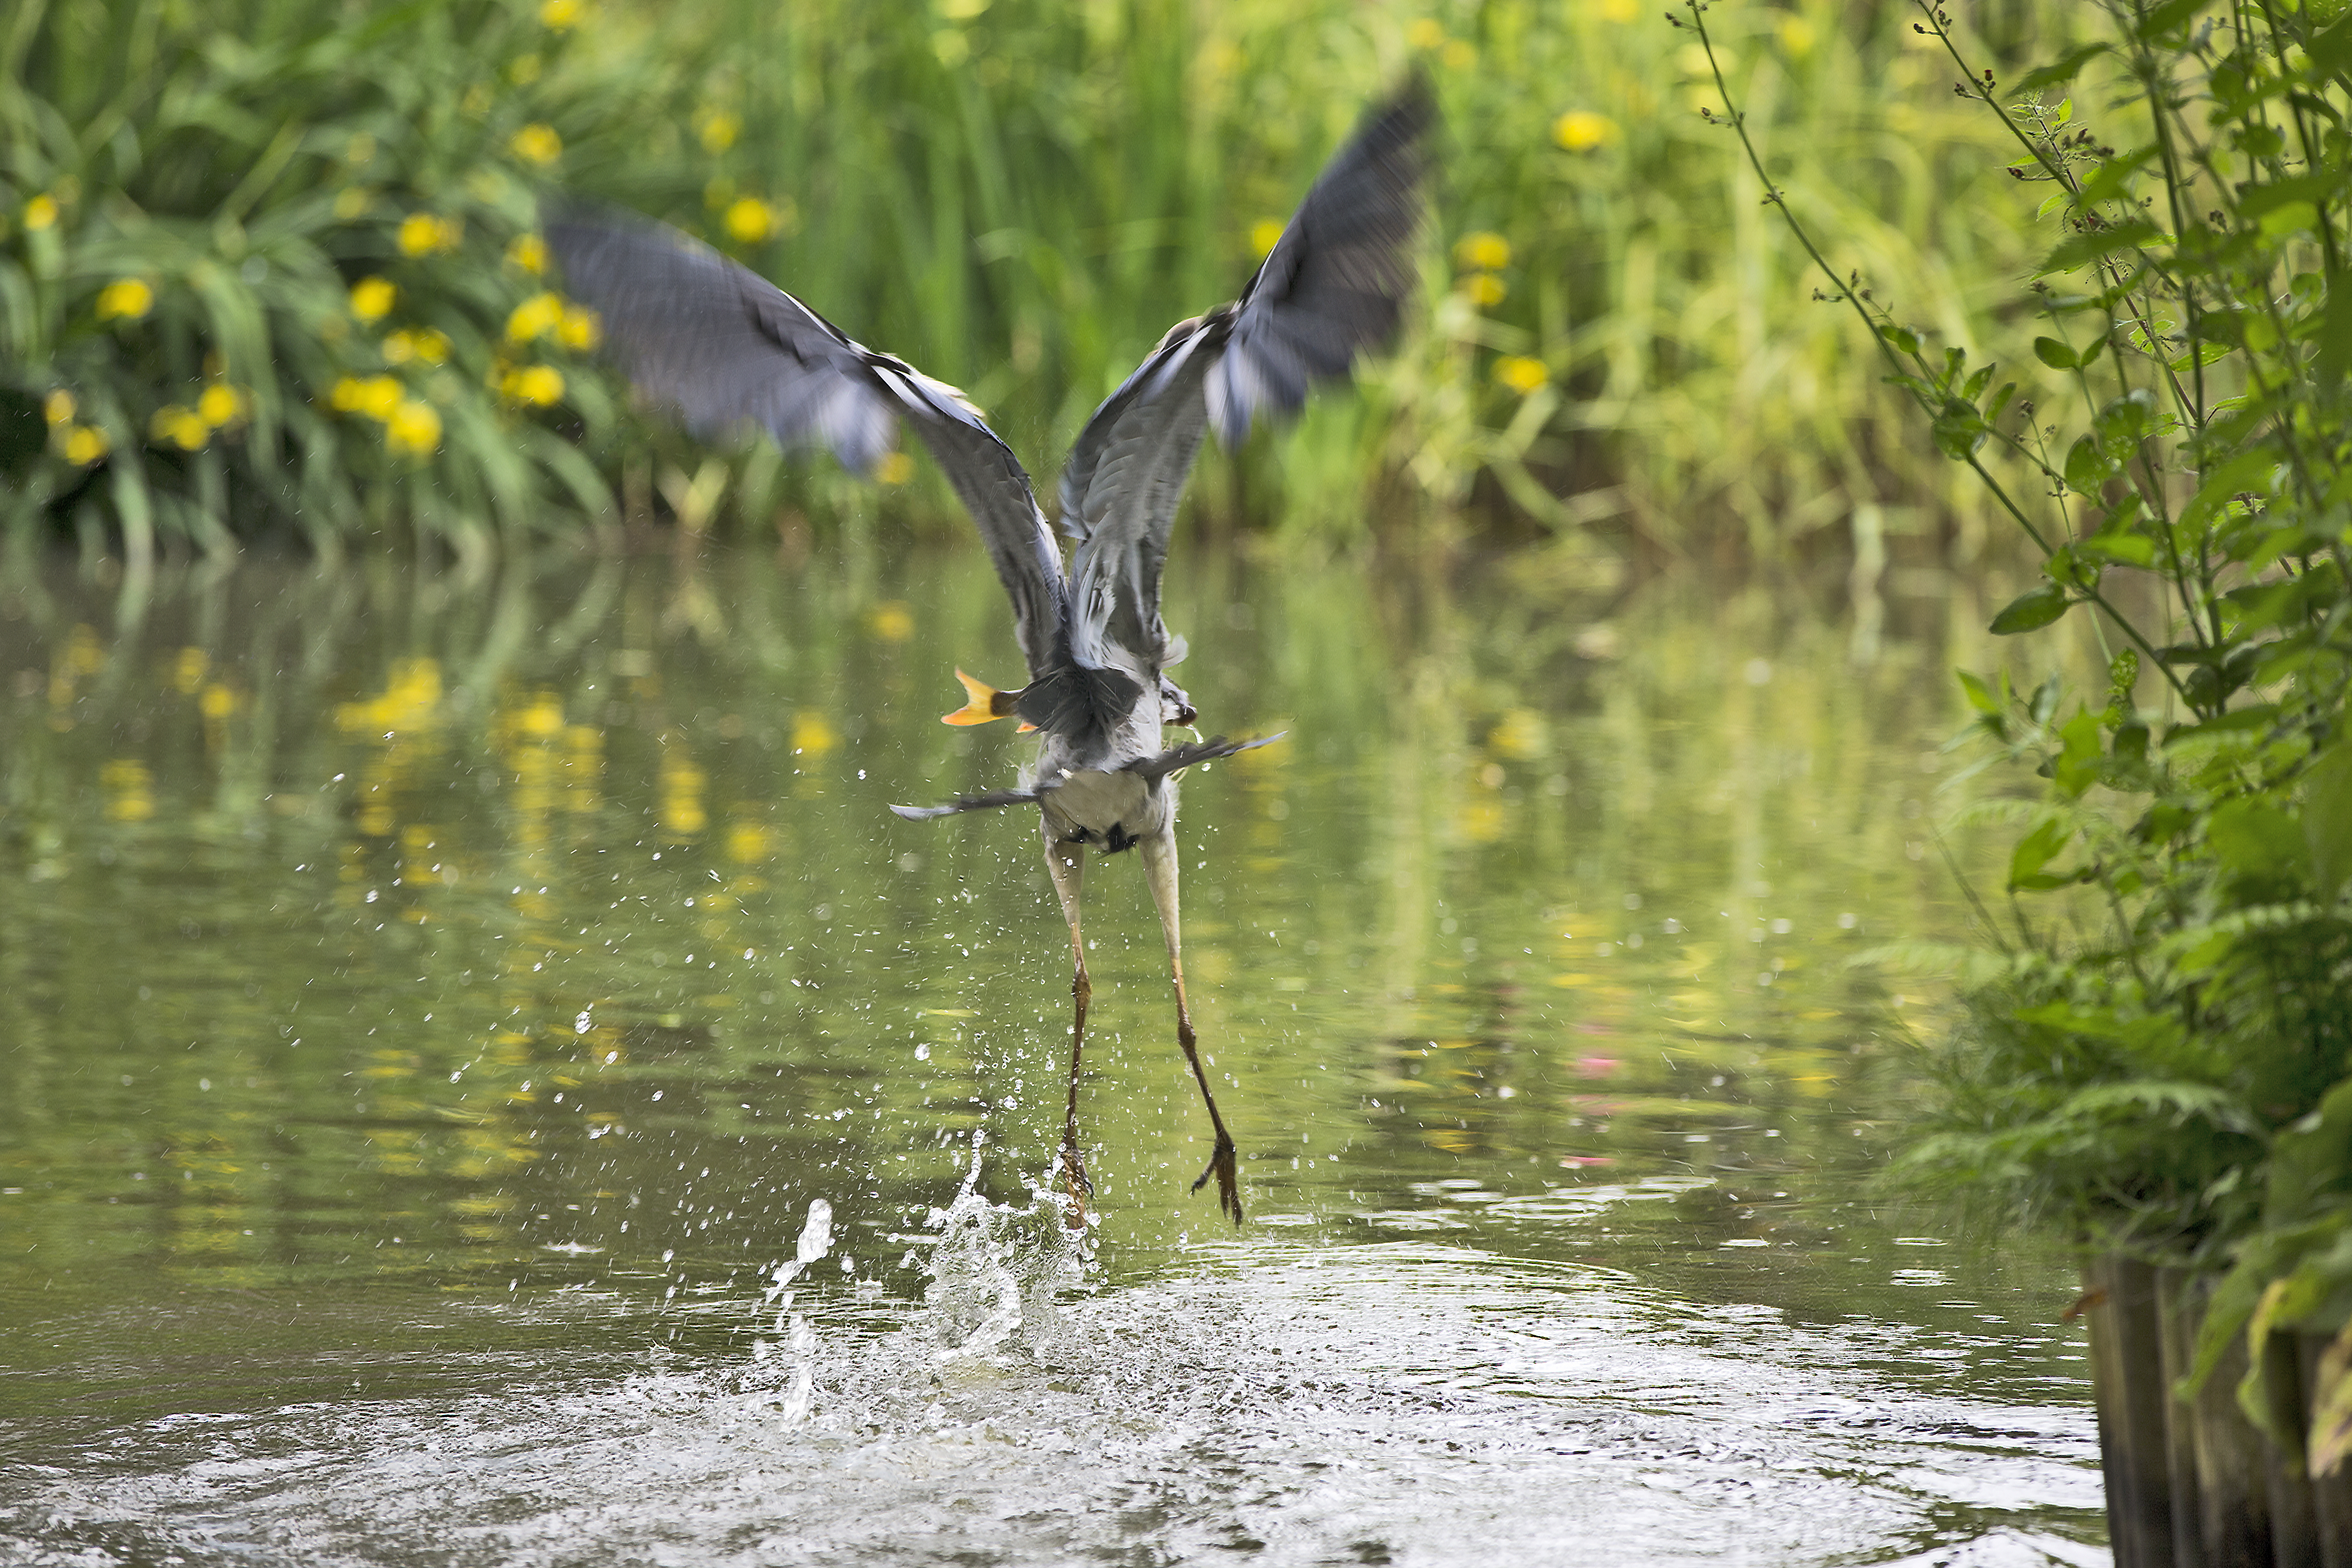 Grey heron Escaping with a Fish